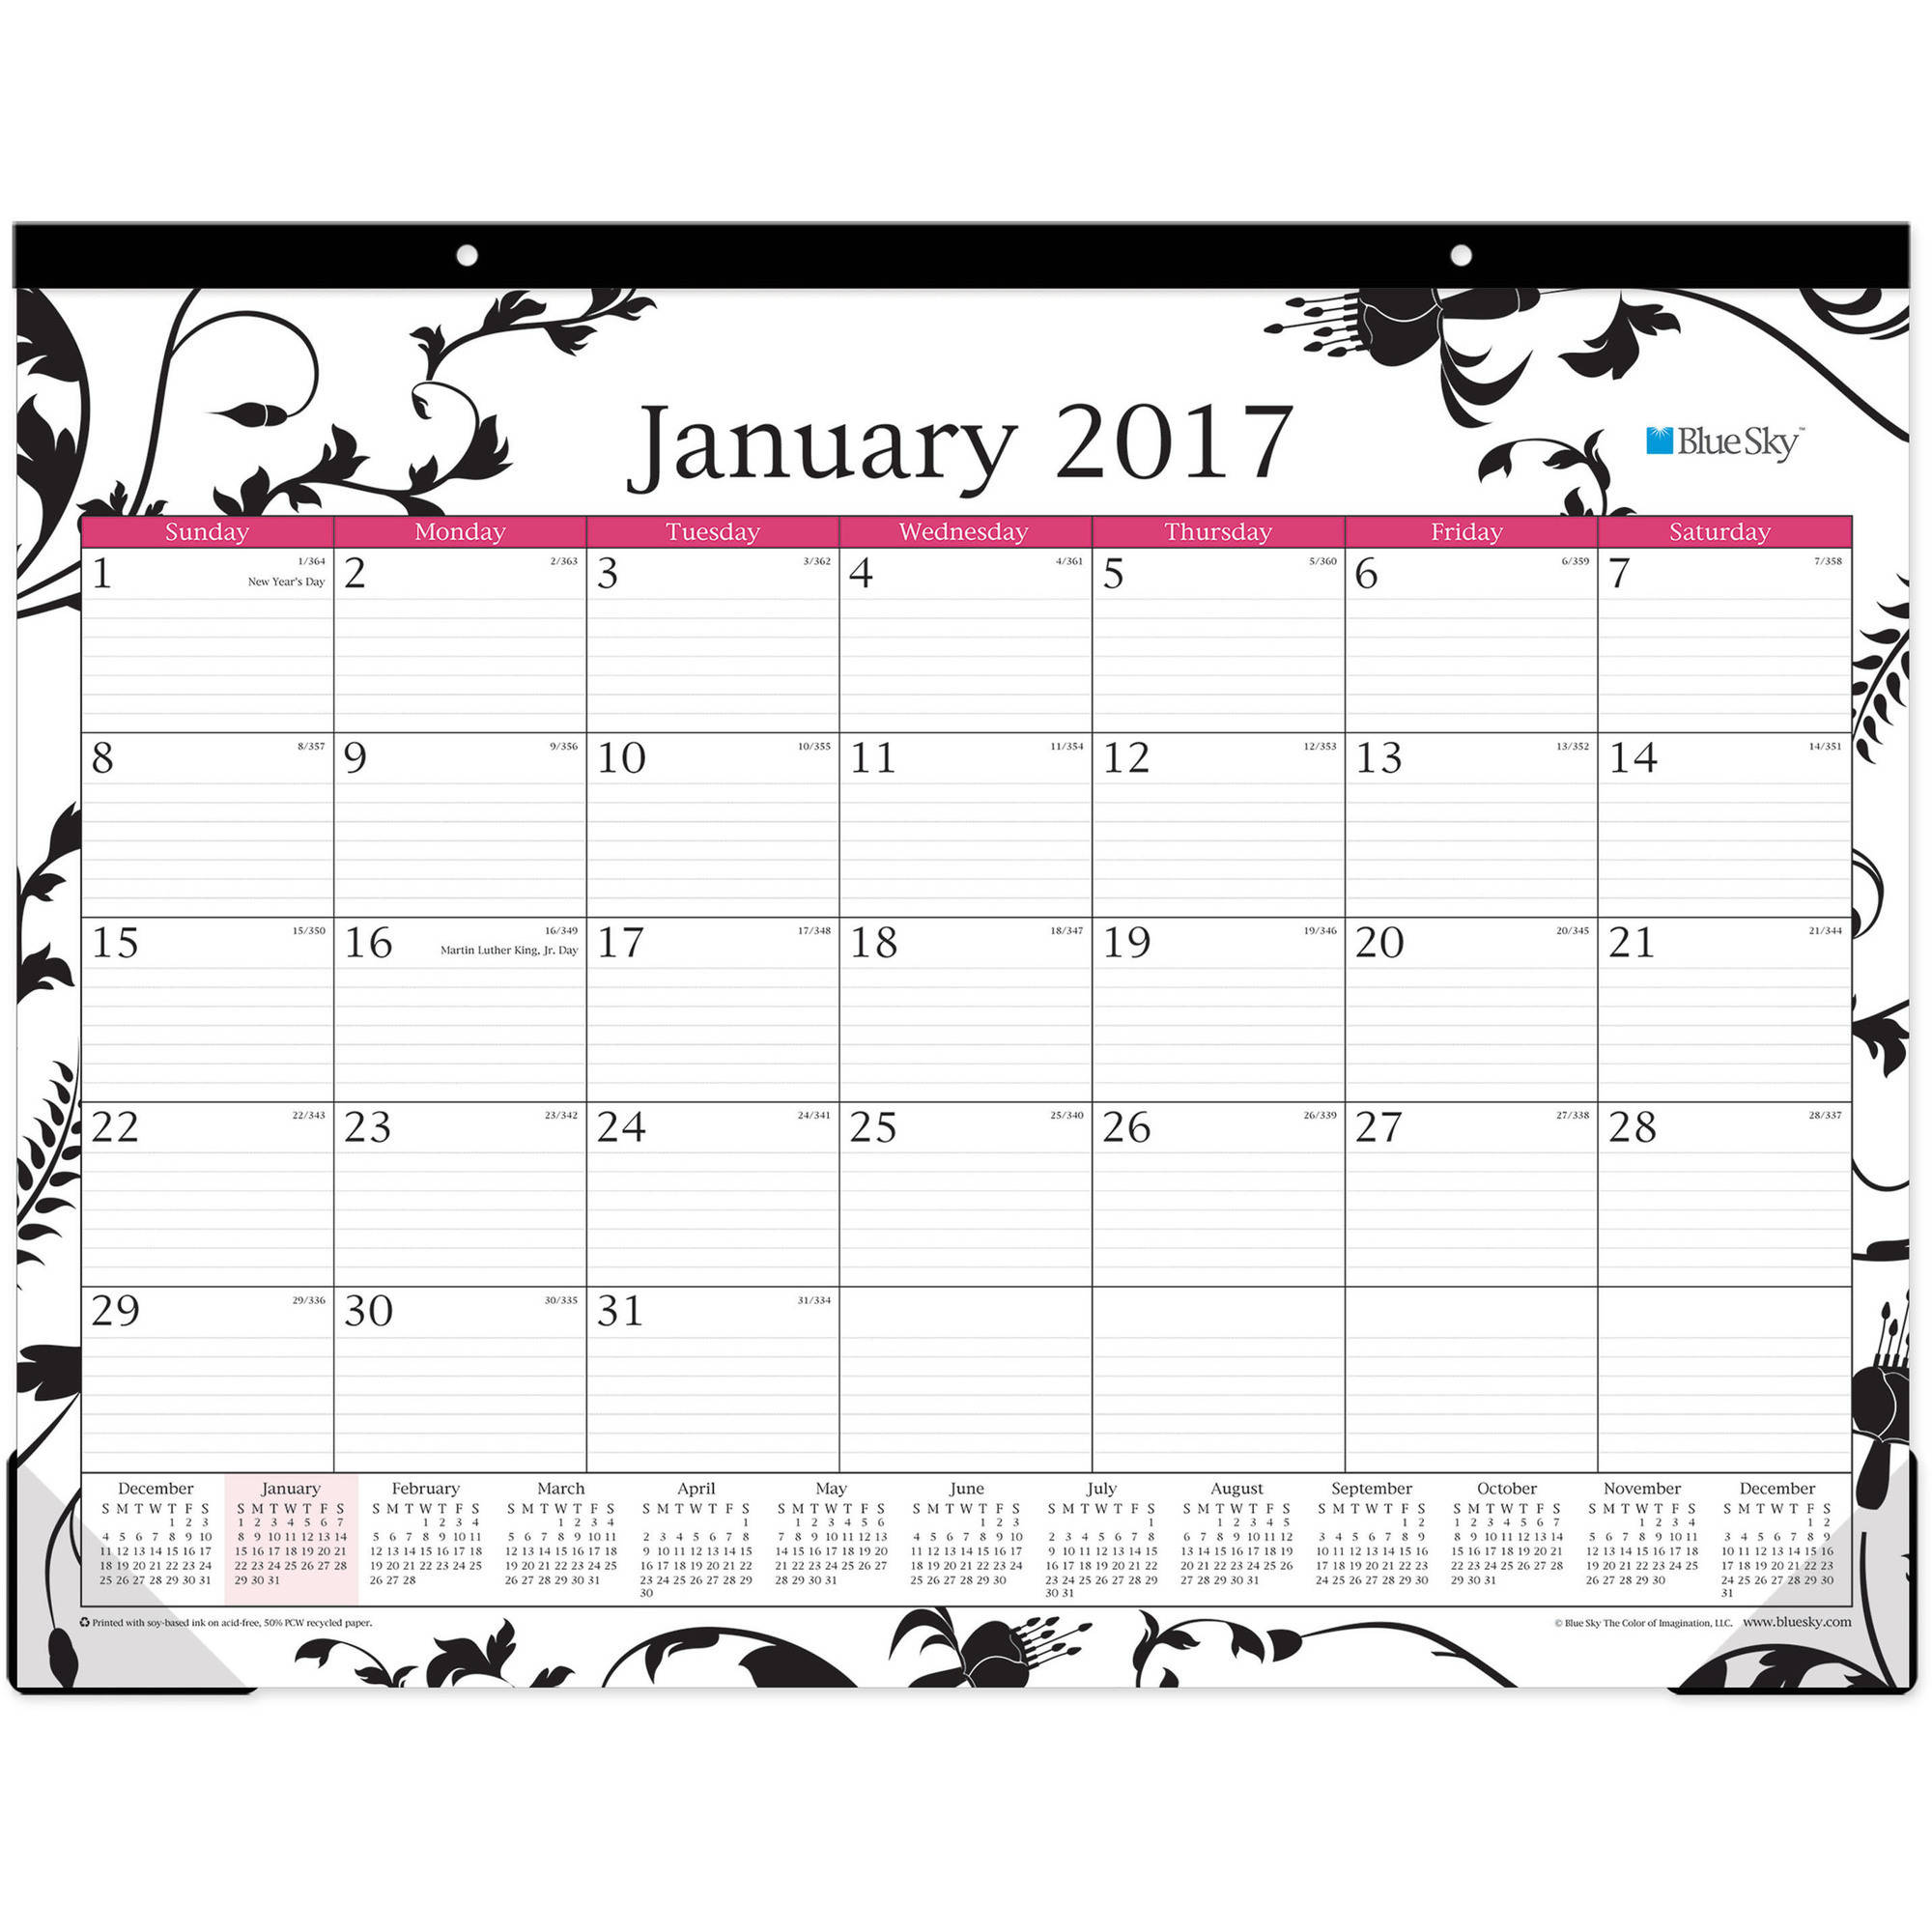 "Blue Sky Analeis 22"" x 17"" Monthly Desk Pad Calendar, 2017"